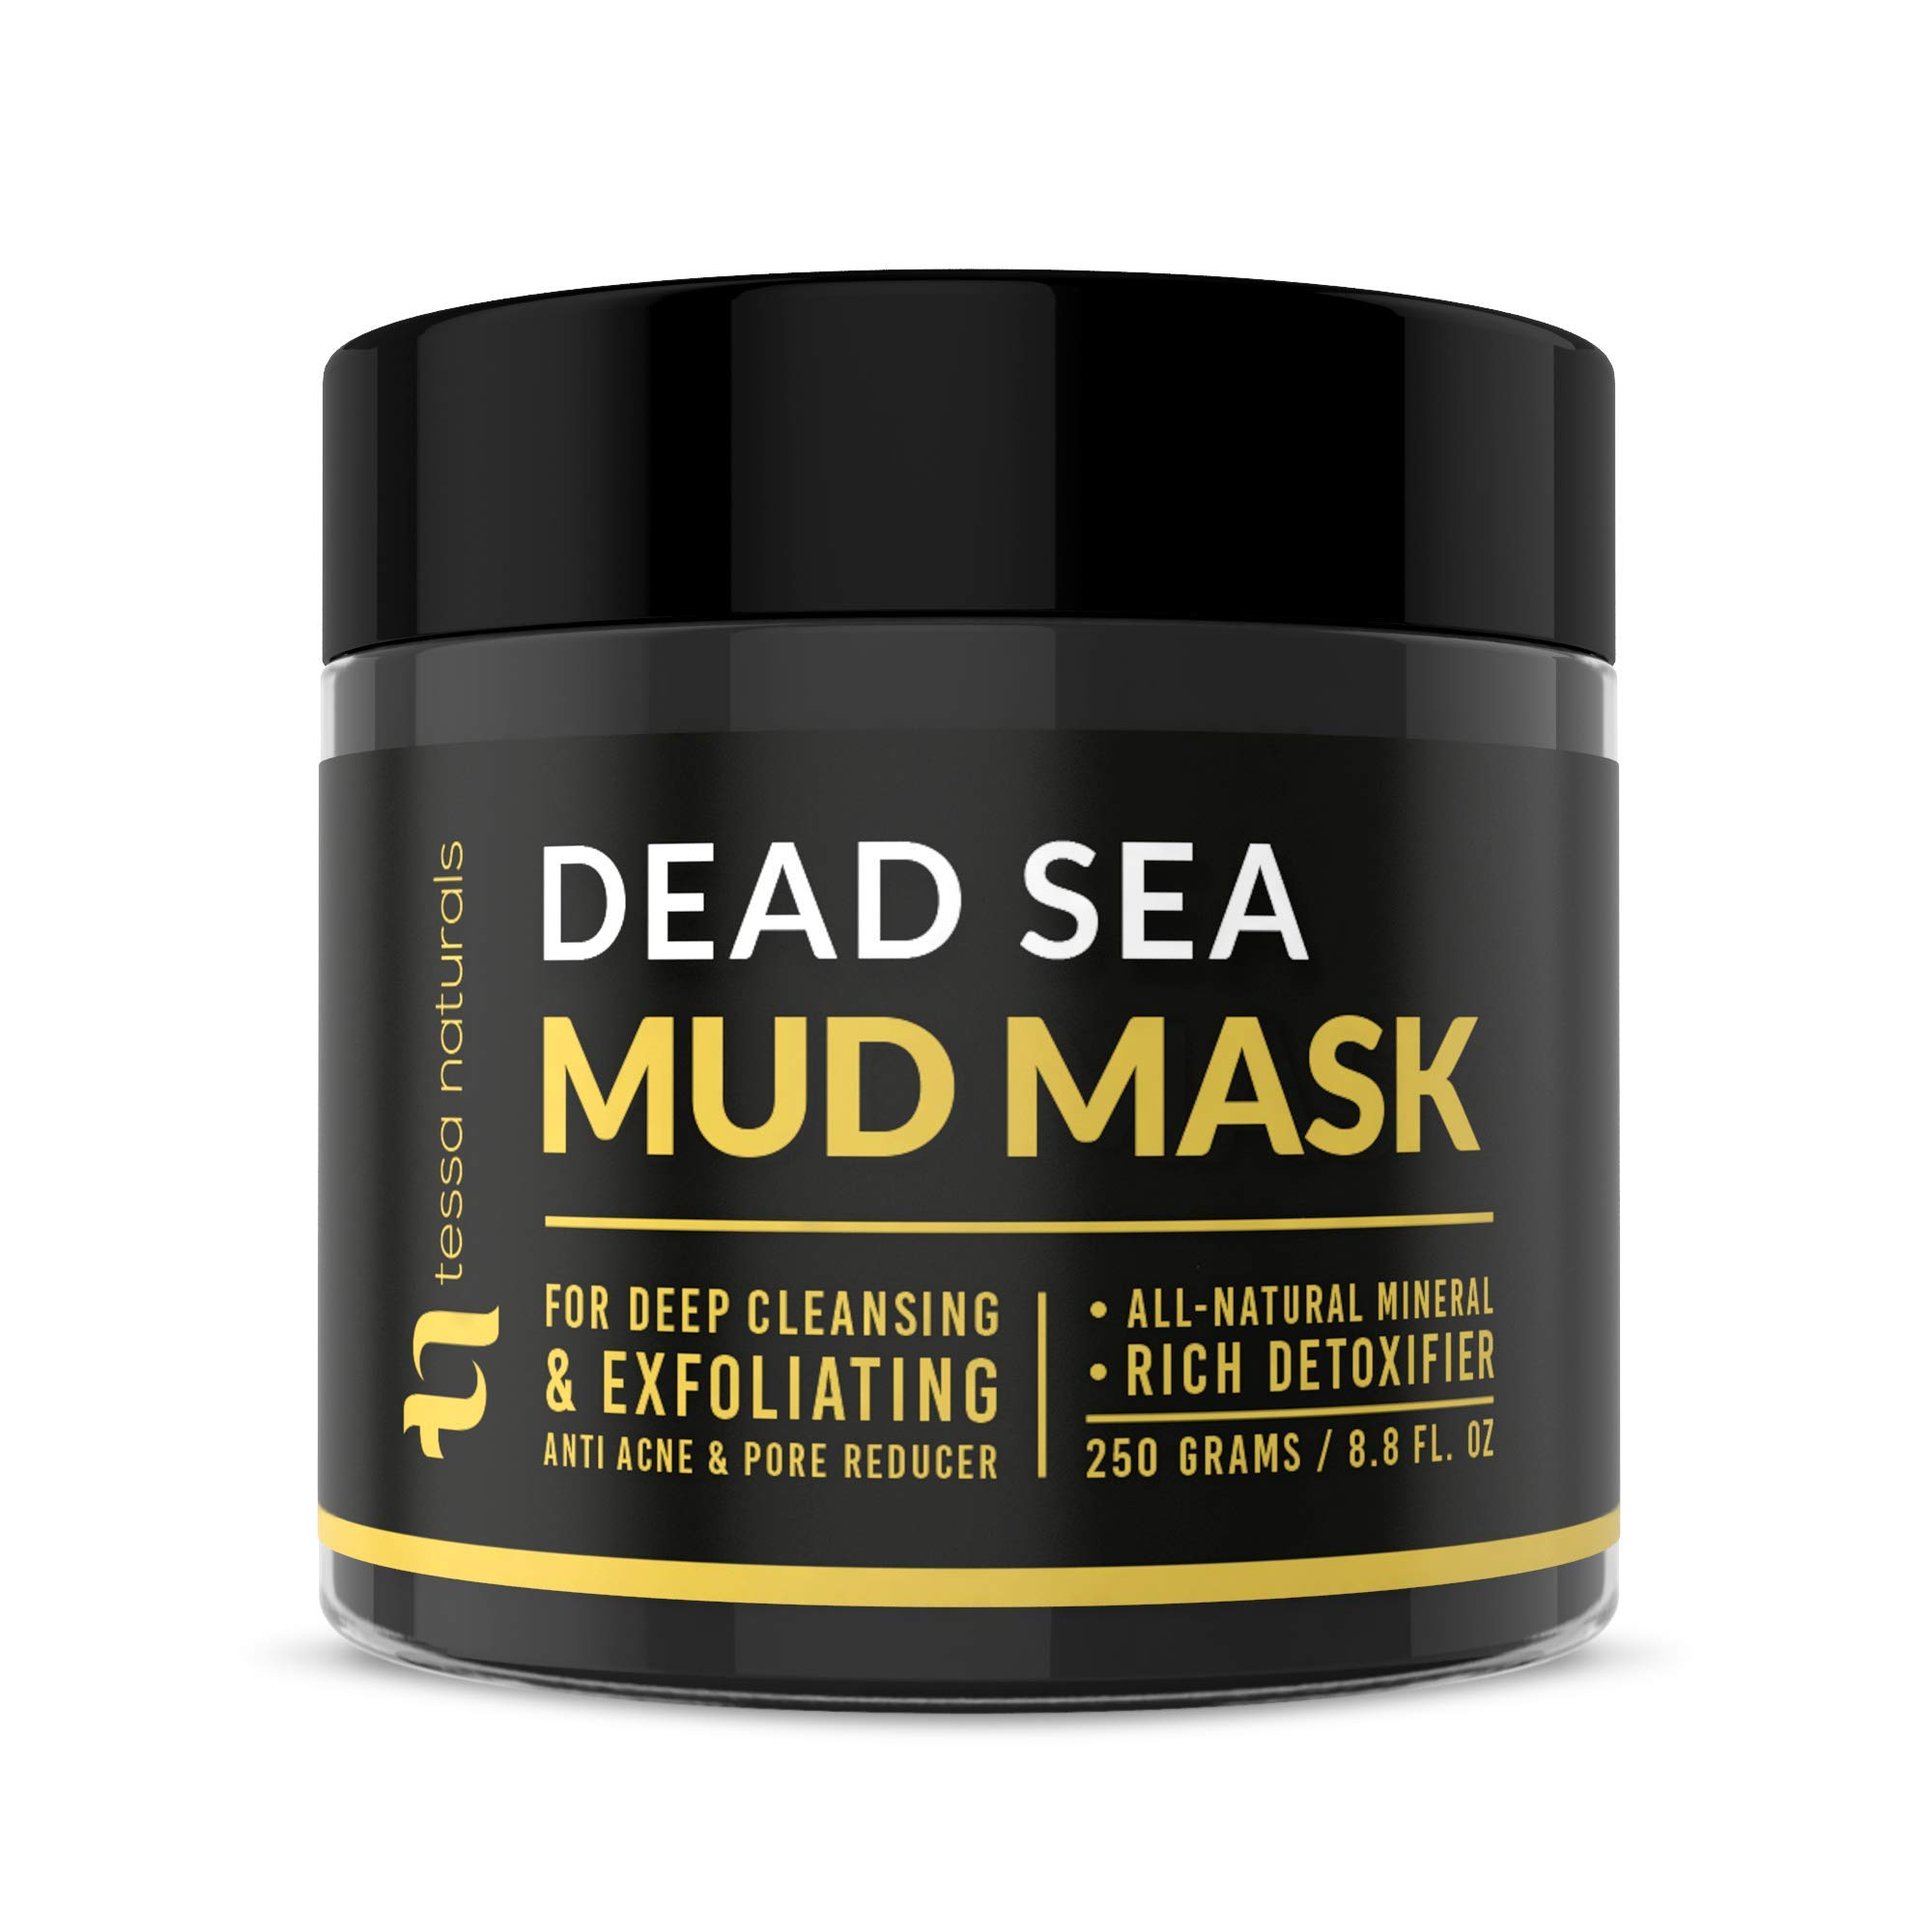 Dead Sea Mud Mask - Enhanced with Collagen - Reduces Blackheads, Pores, Acne, Oily Skin - Visibly Healthier Face & Body Complexion - All Natural Anti-Aging Formula for Women & Men by Tessa Naturals